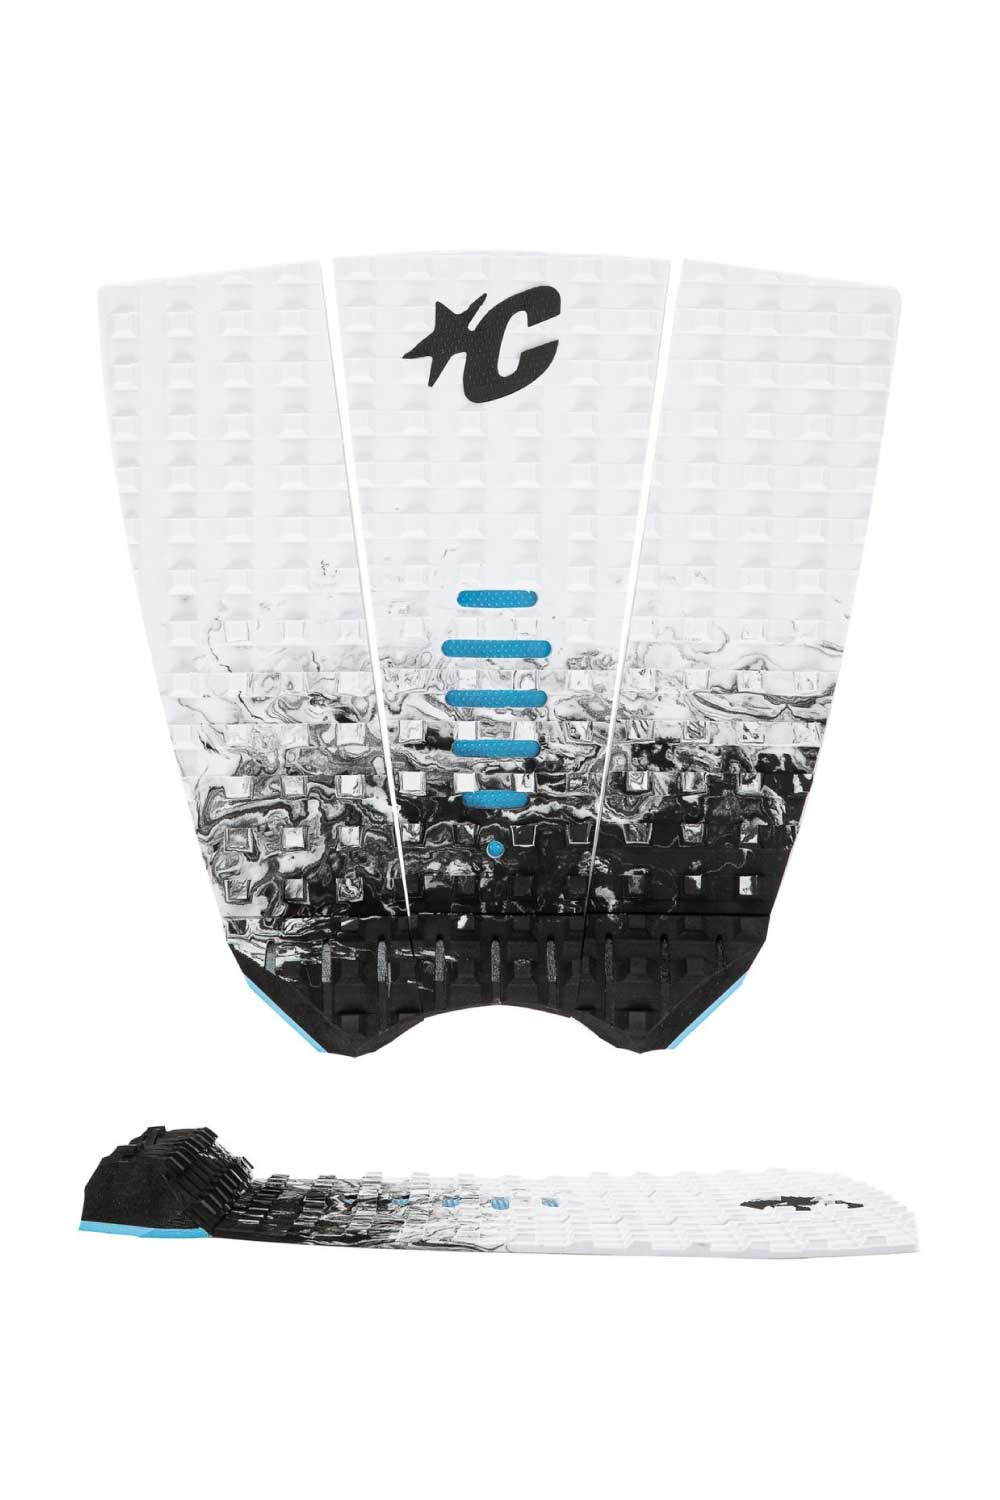 Creatures of Leisure Mick Fanning Tail Pad